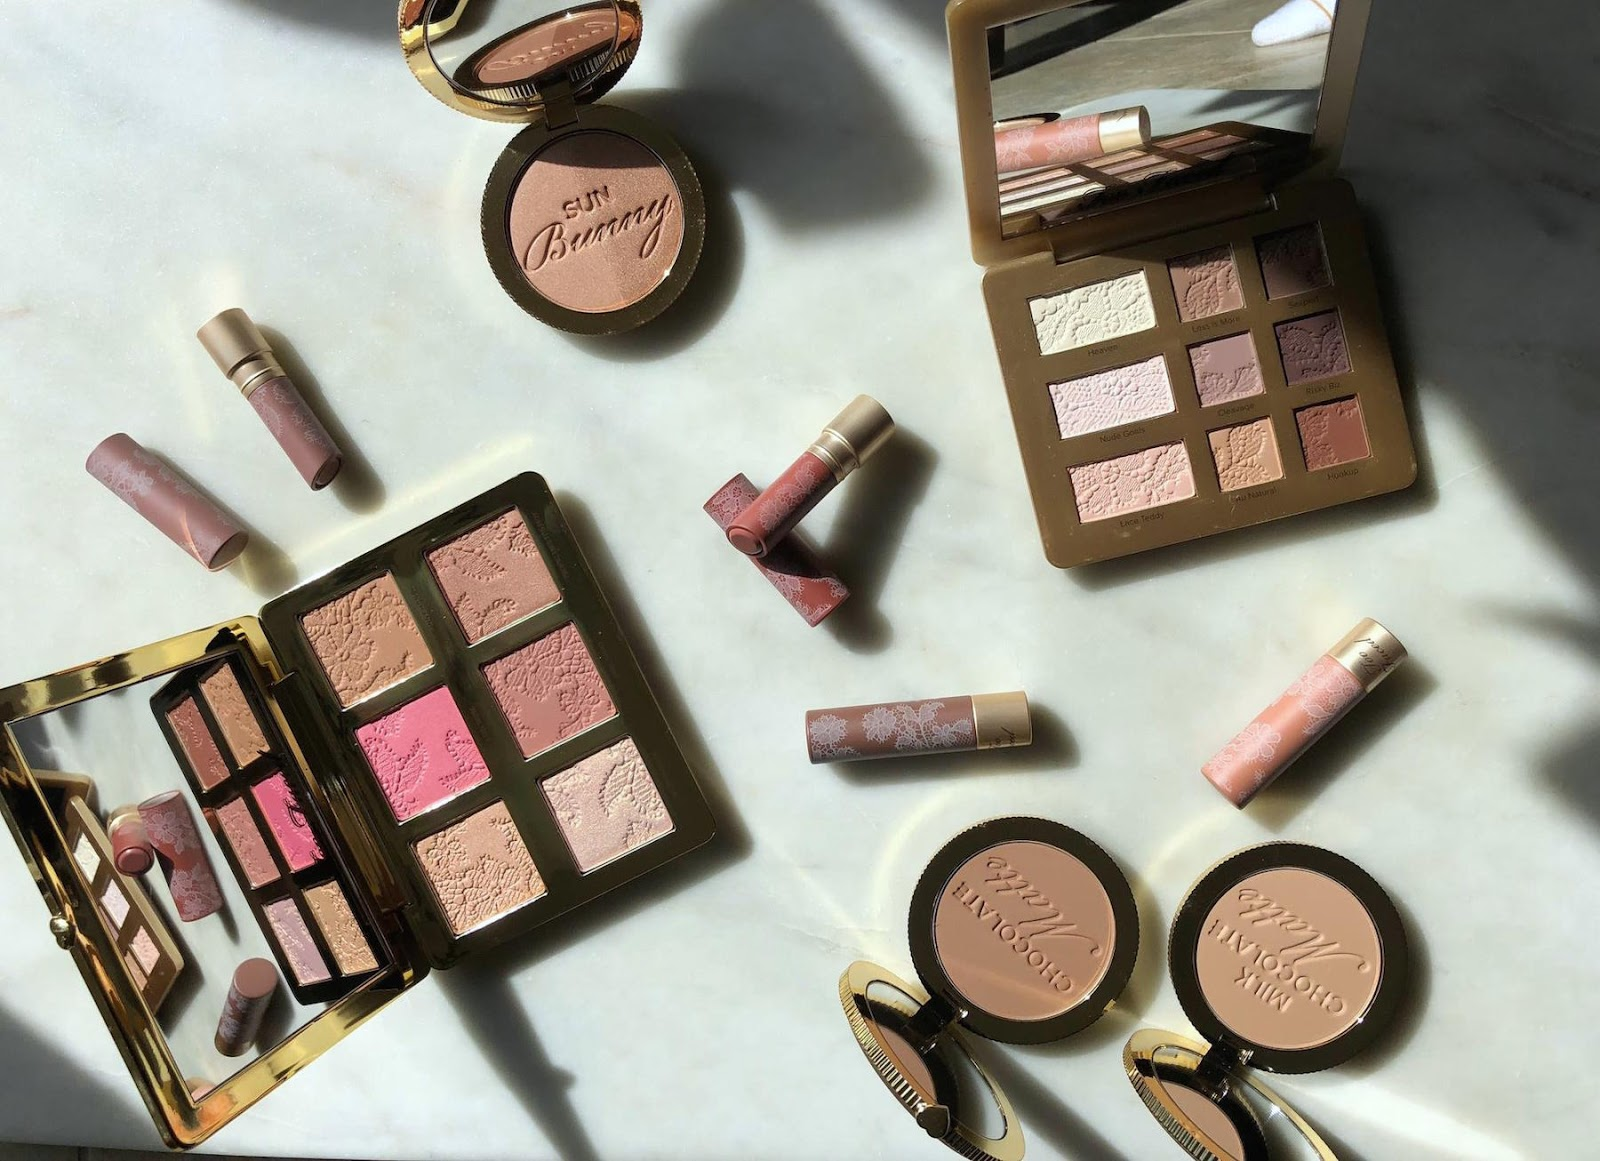 Too Faced Natural Eyes, Natural Face and Natural Nudes Lipstick collections: A quick review